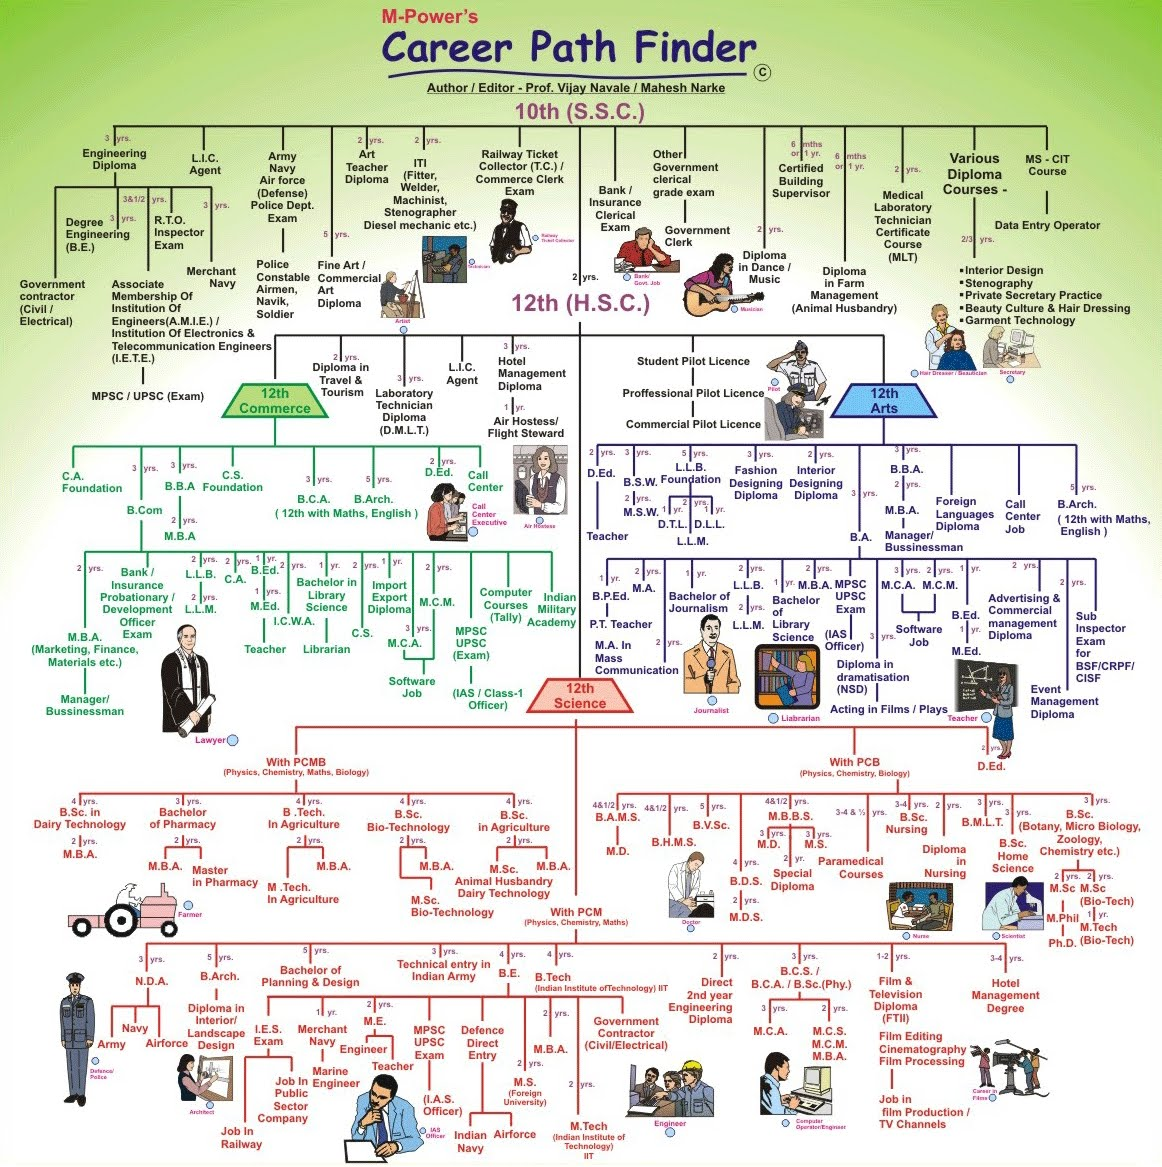 chettour horizons 4 students: career path finder, Human Body